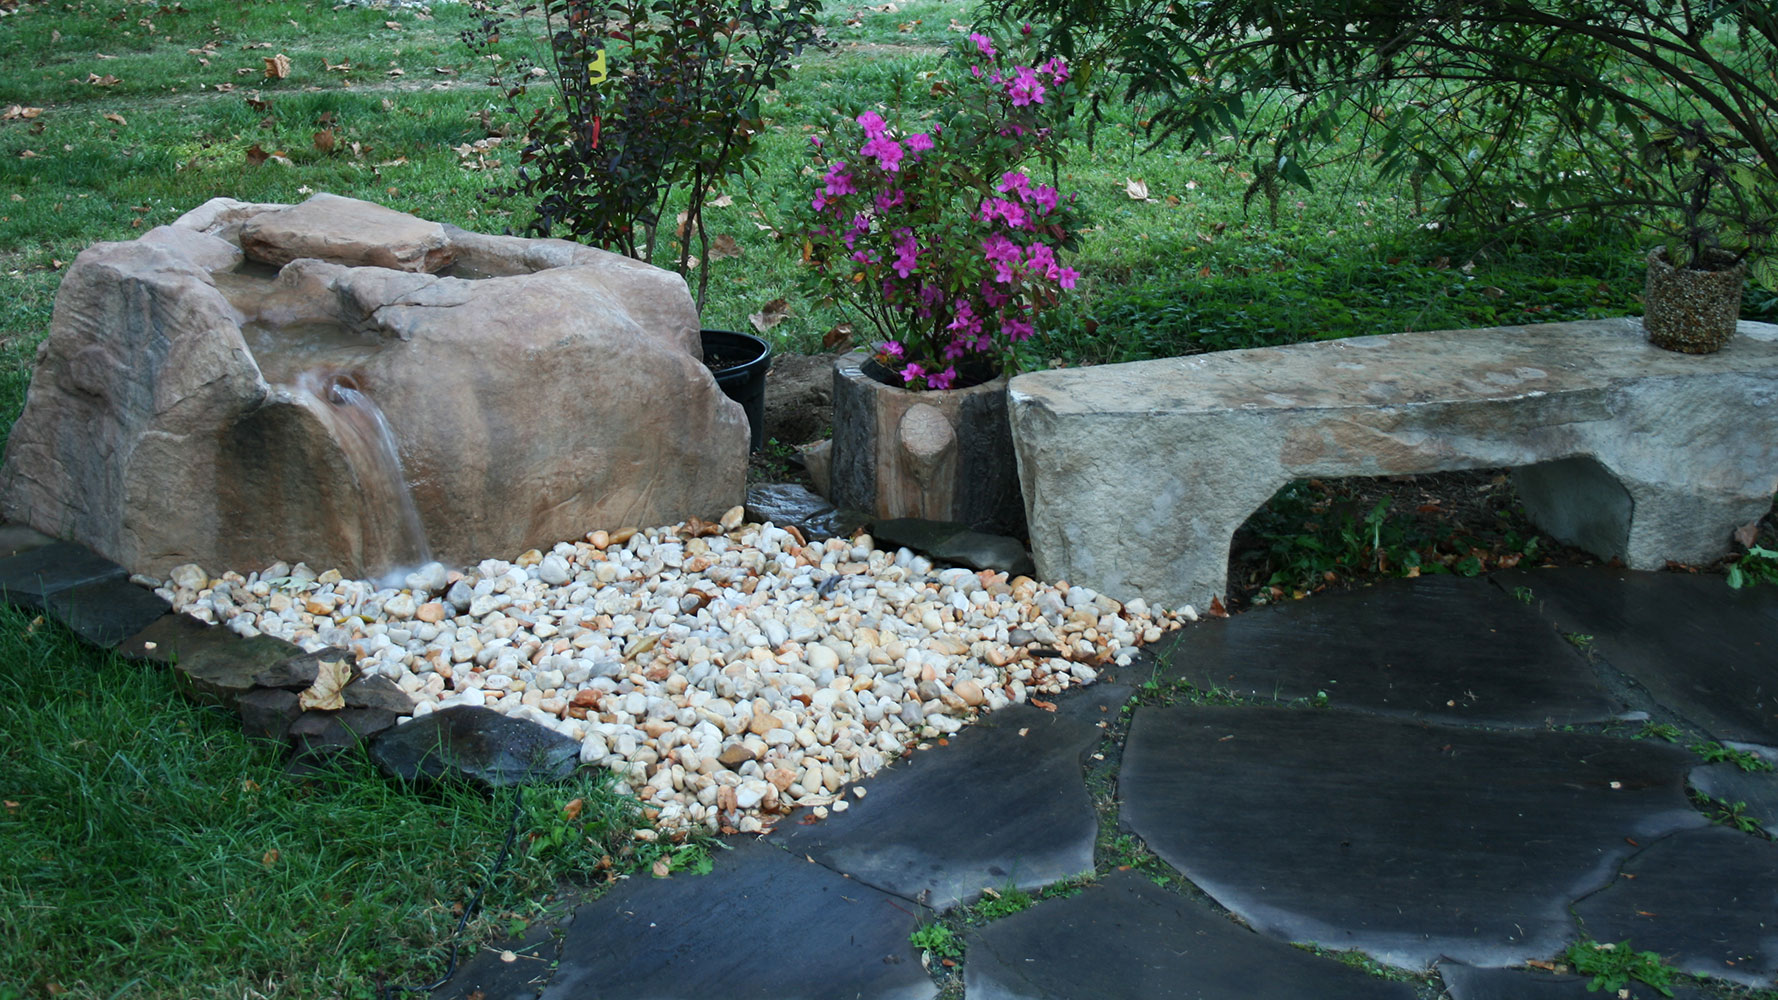 Benches, Boulders And More